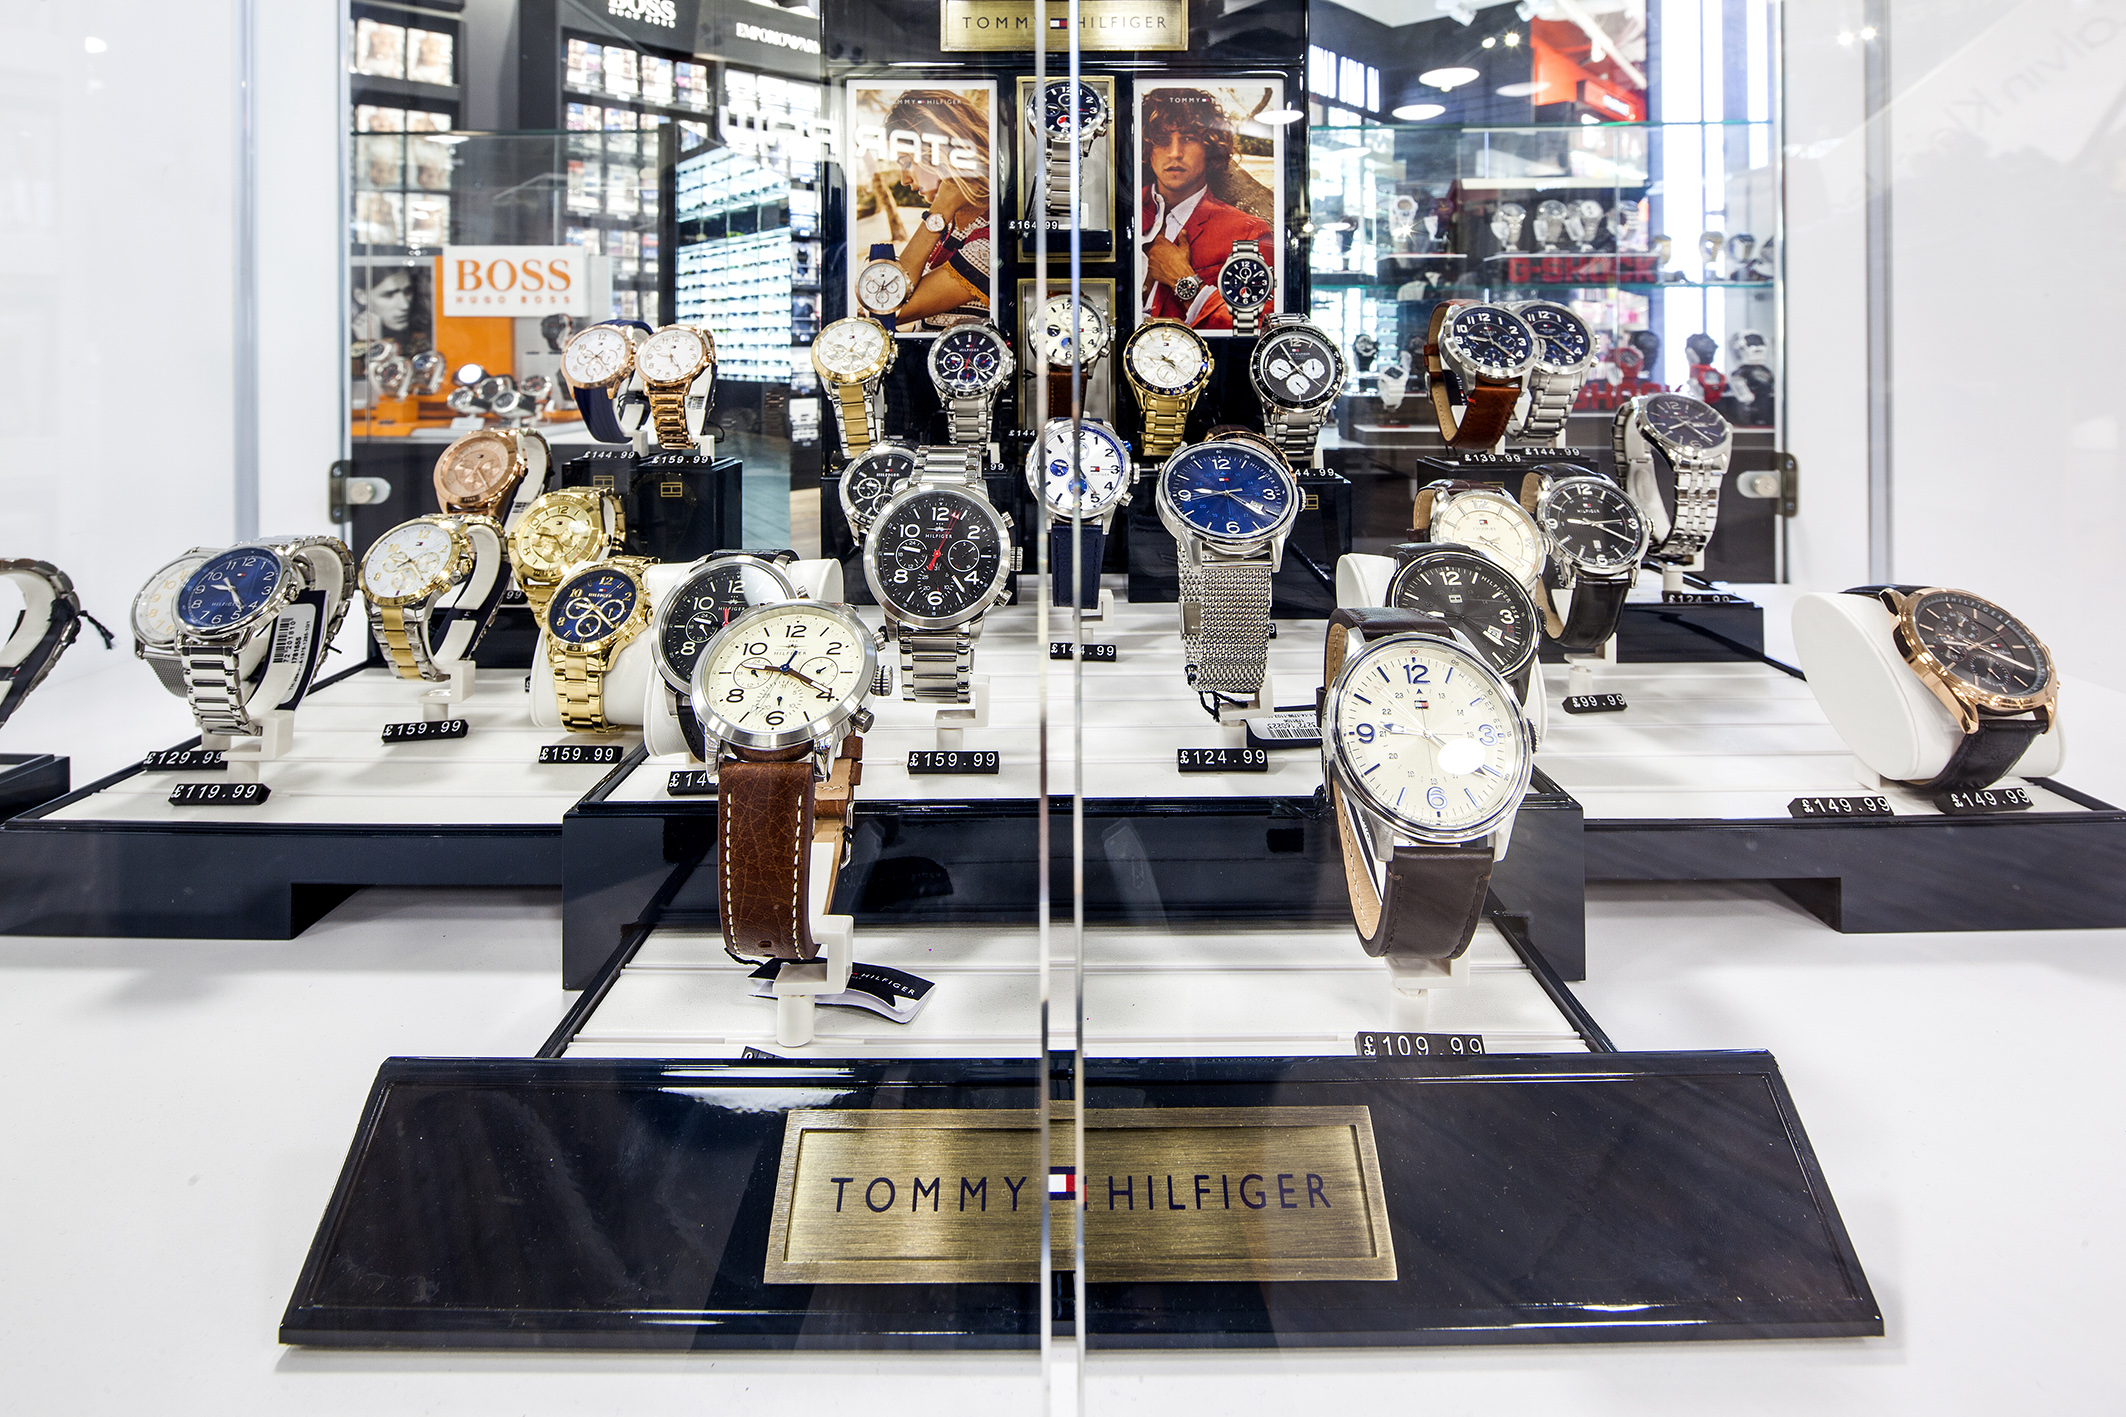 sports direct watches, watches, watch photography, tommy hilfiger watches